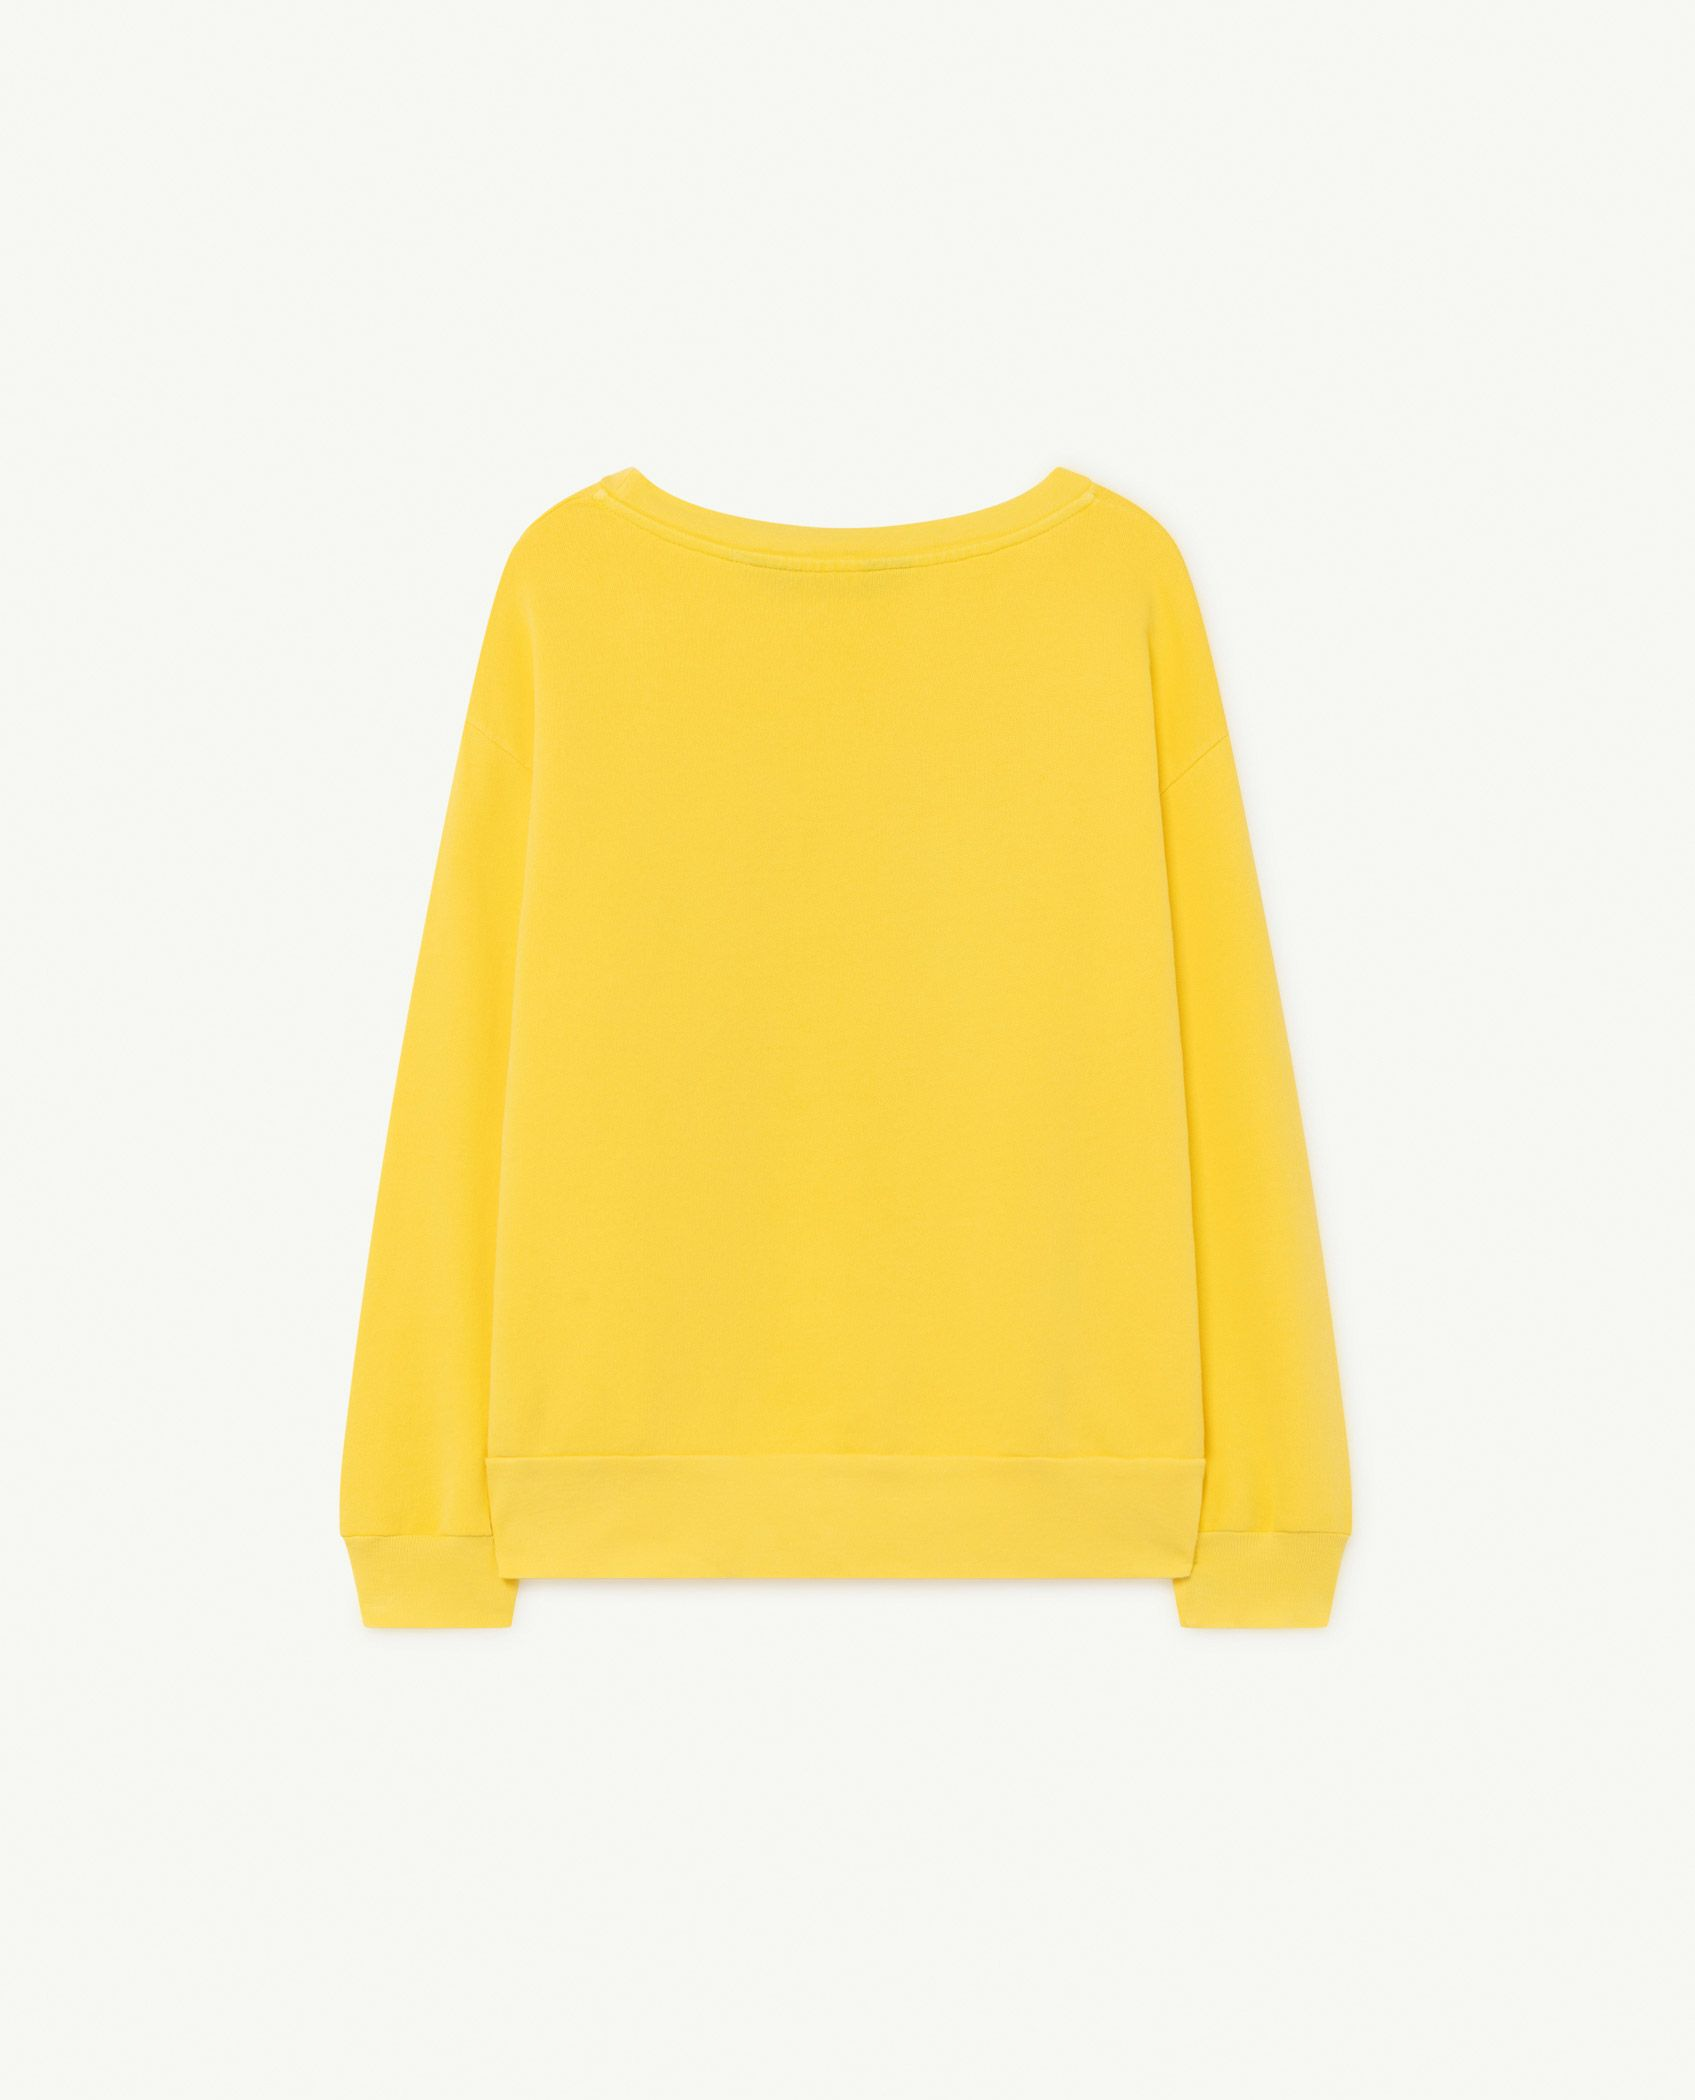 Soft Yellow Cyprus Bear Sweatshirt img-2